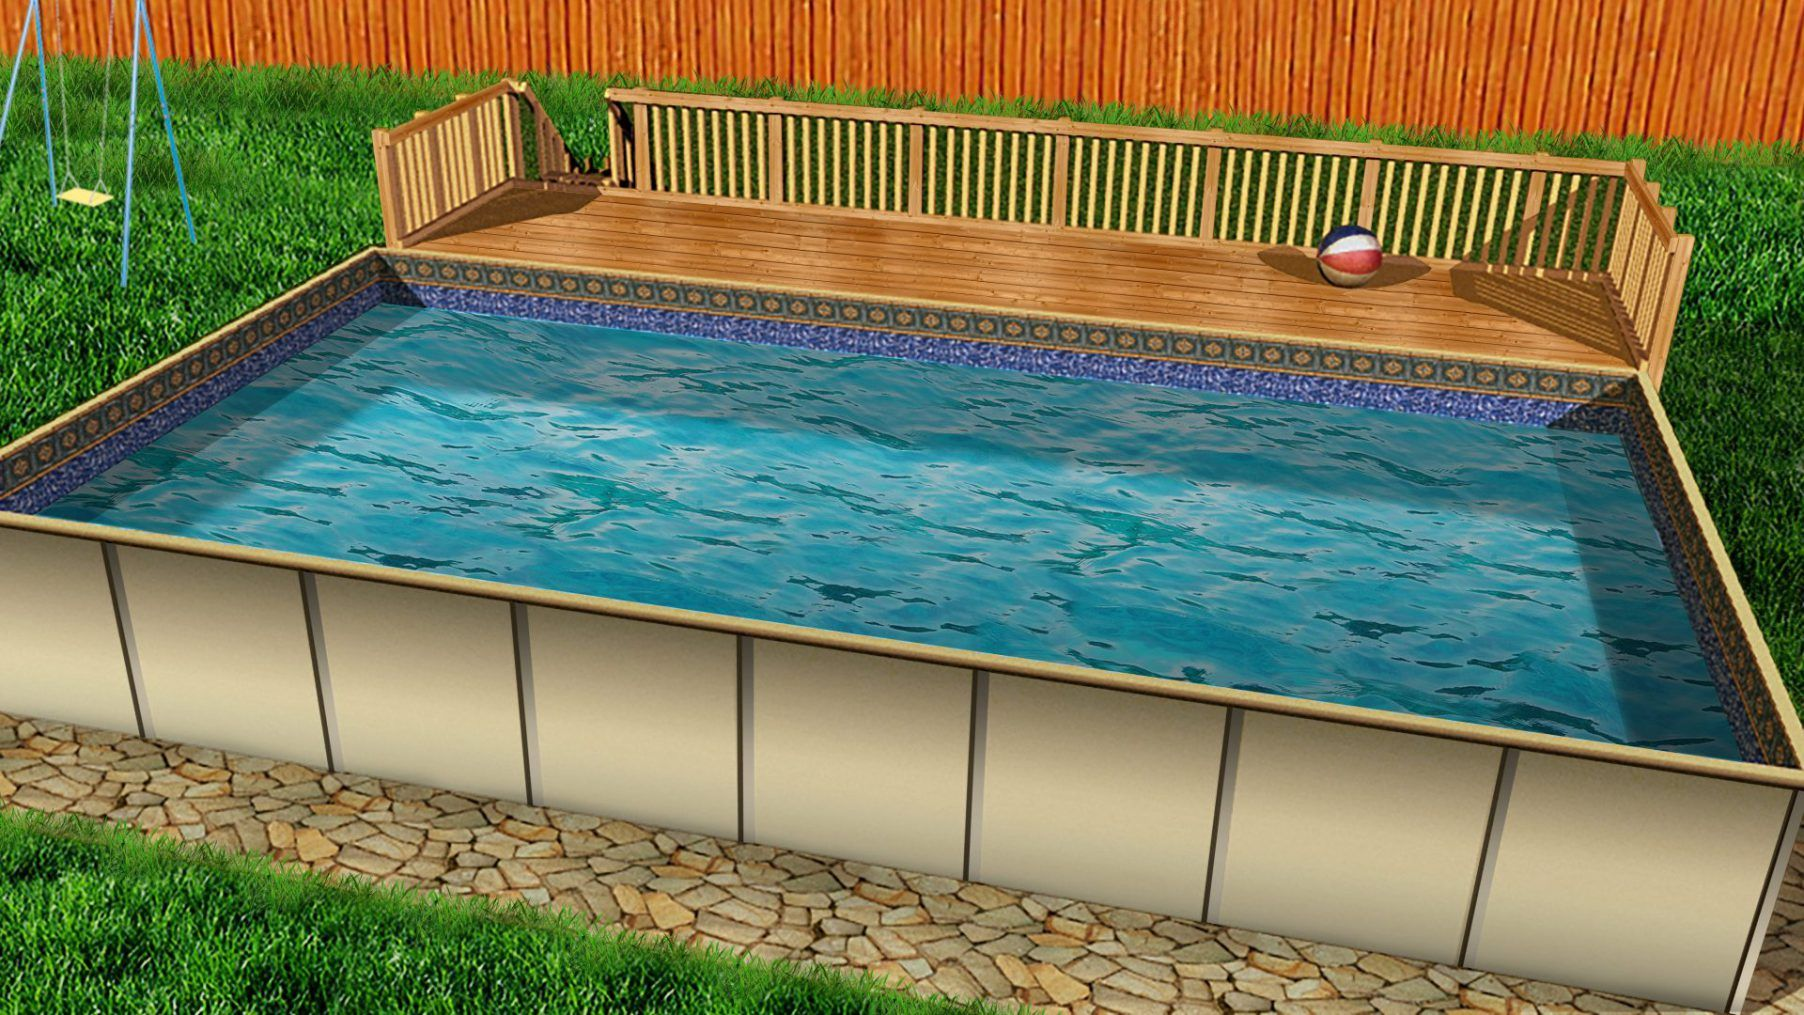 Rectangular Above Ground Swimming Pools Vs Classic Pools In 2020